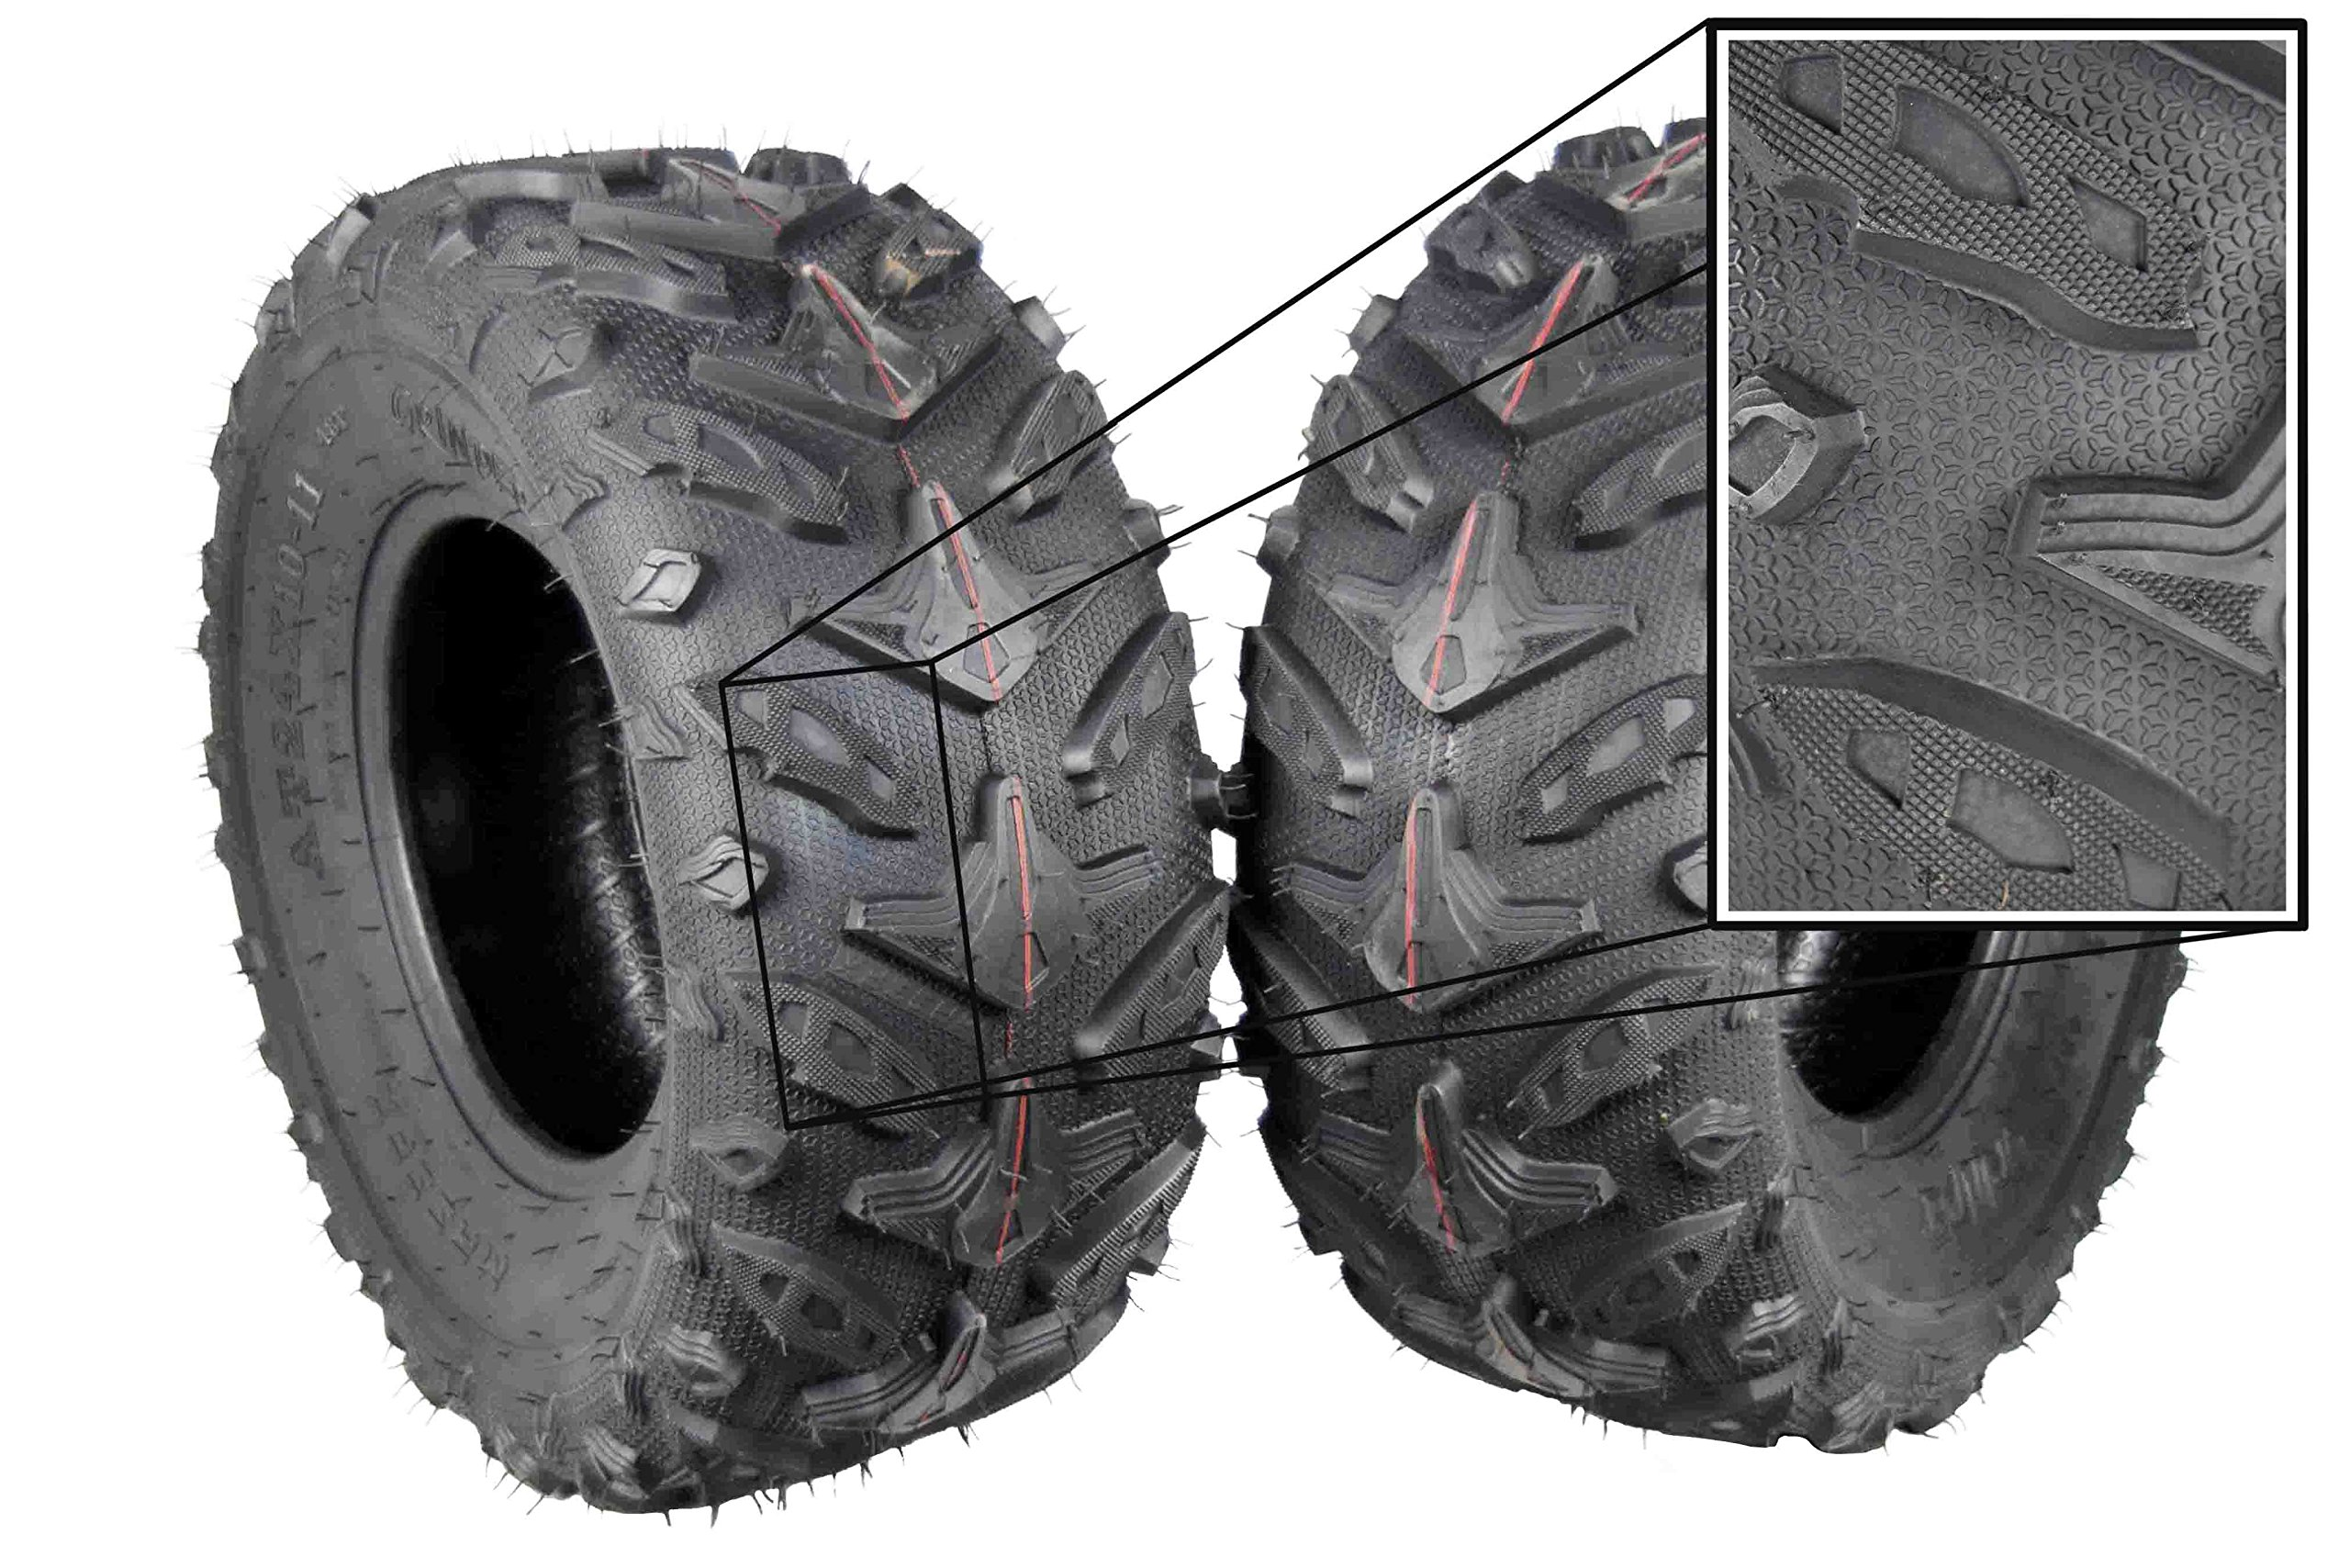 MASSFX Grinder Series ATV Dual Compound Tread Mud Sand Snow and Rock Tires (Two Rear 24x10-11) Great for Honda Rancher by MASSFX